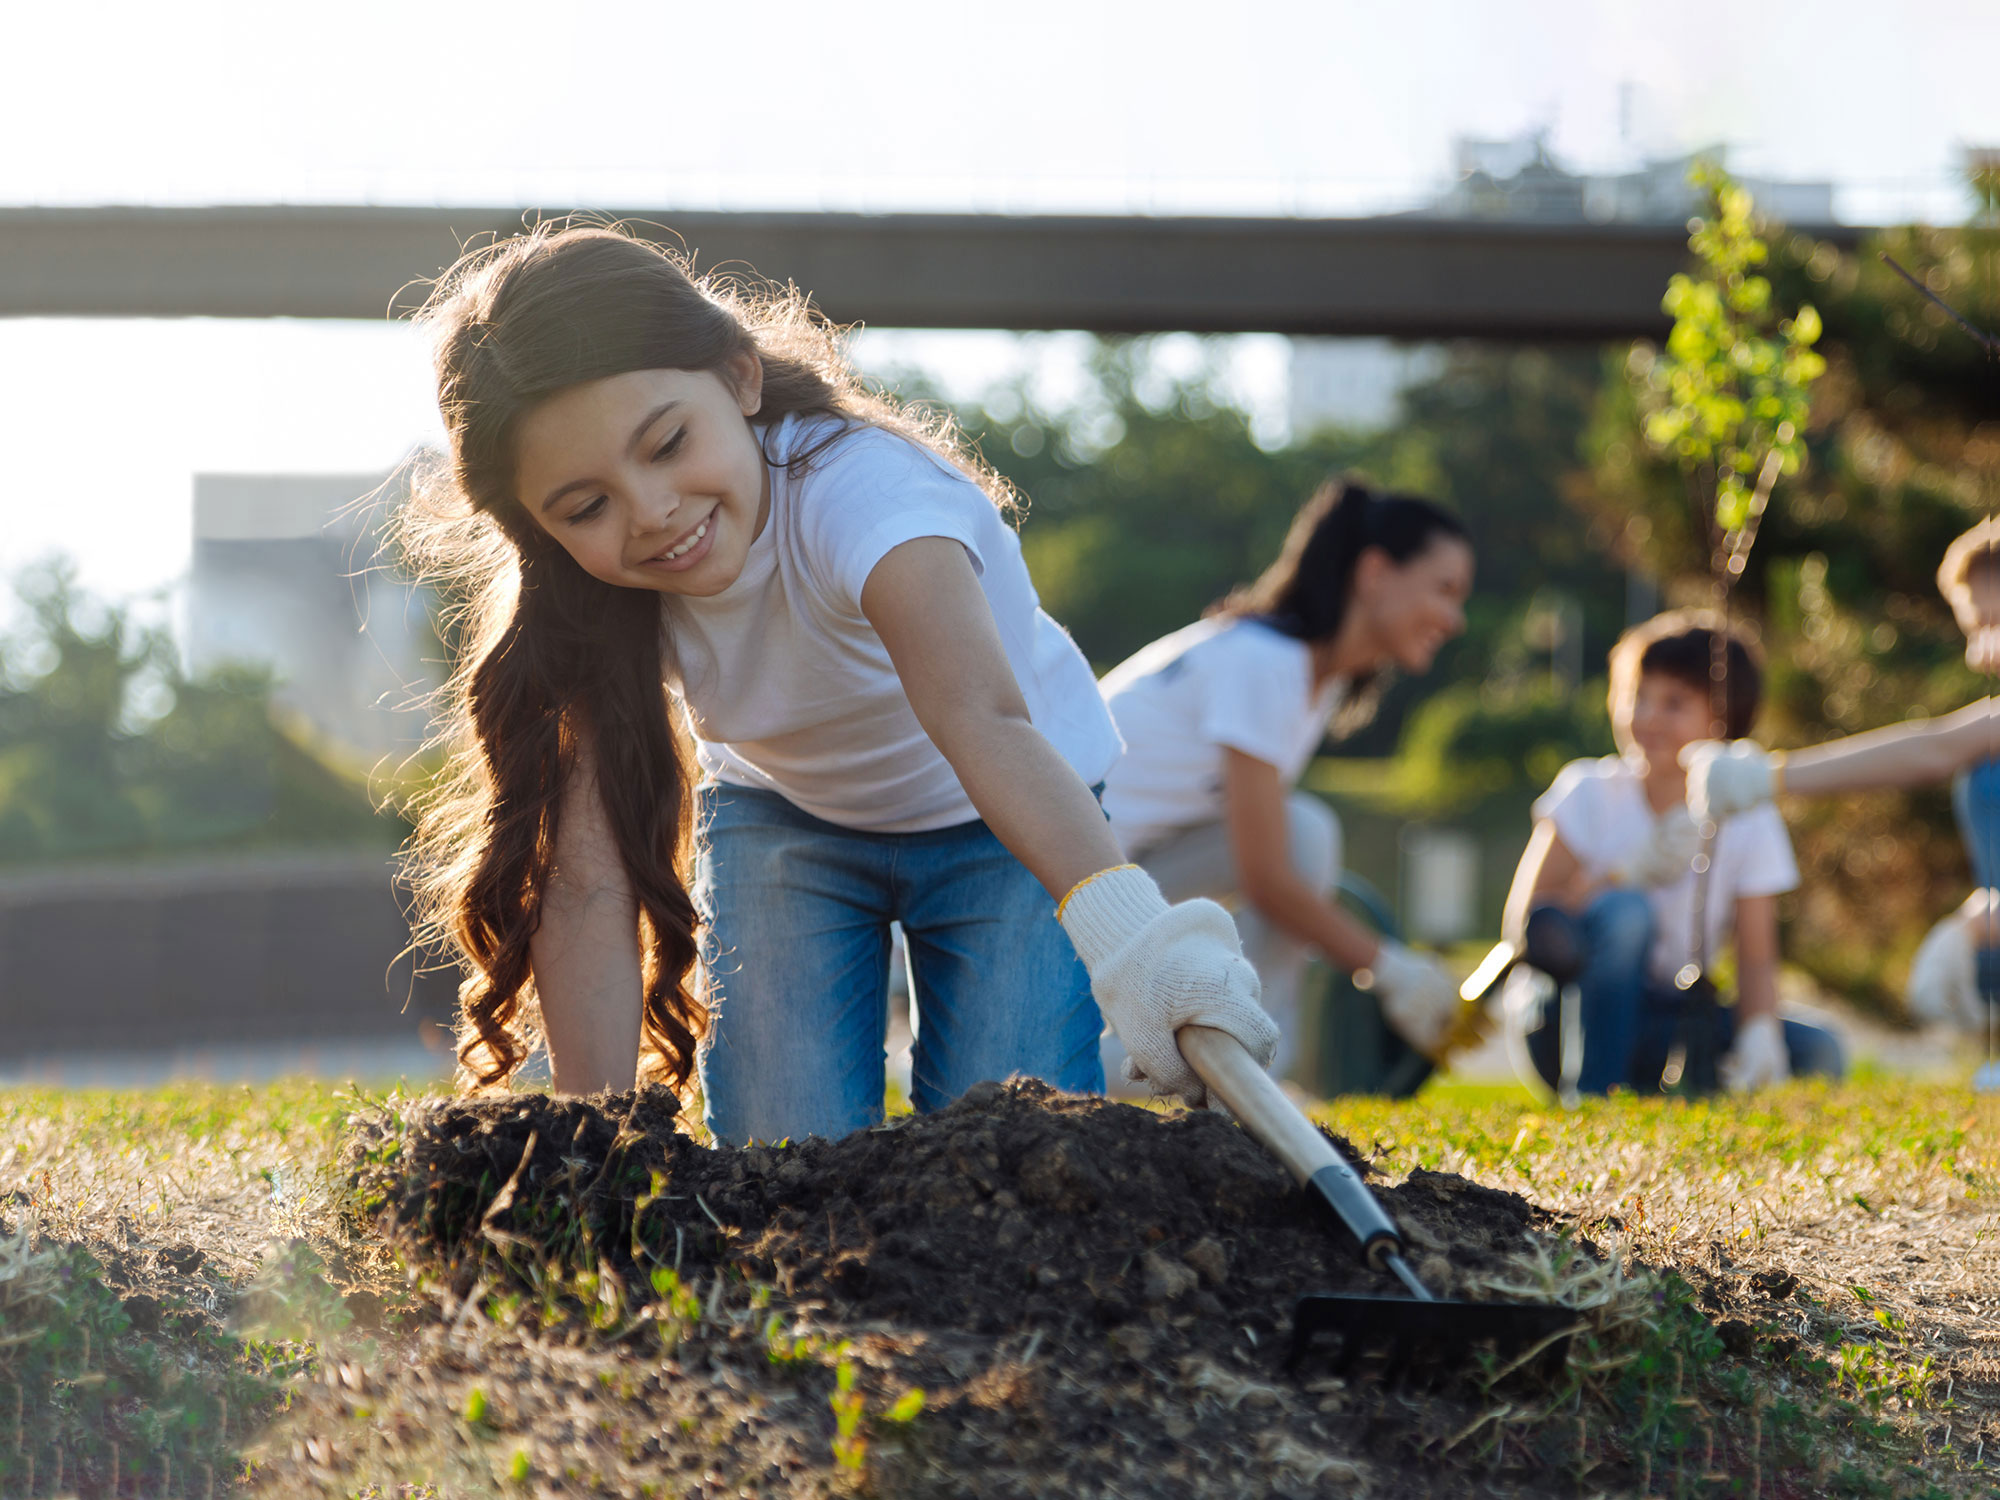 A young girl smiles while working in a community garden; demonstrates corporate social responsibility